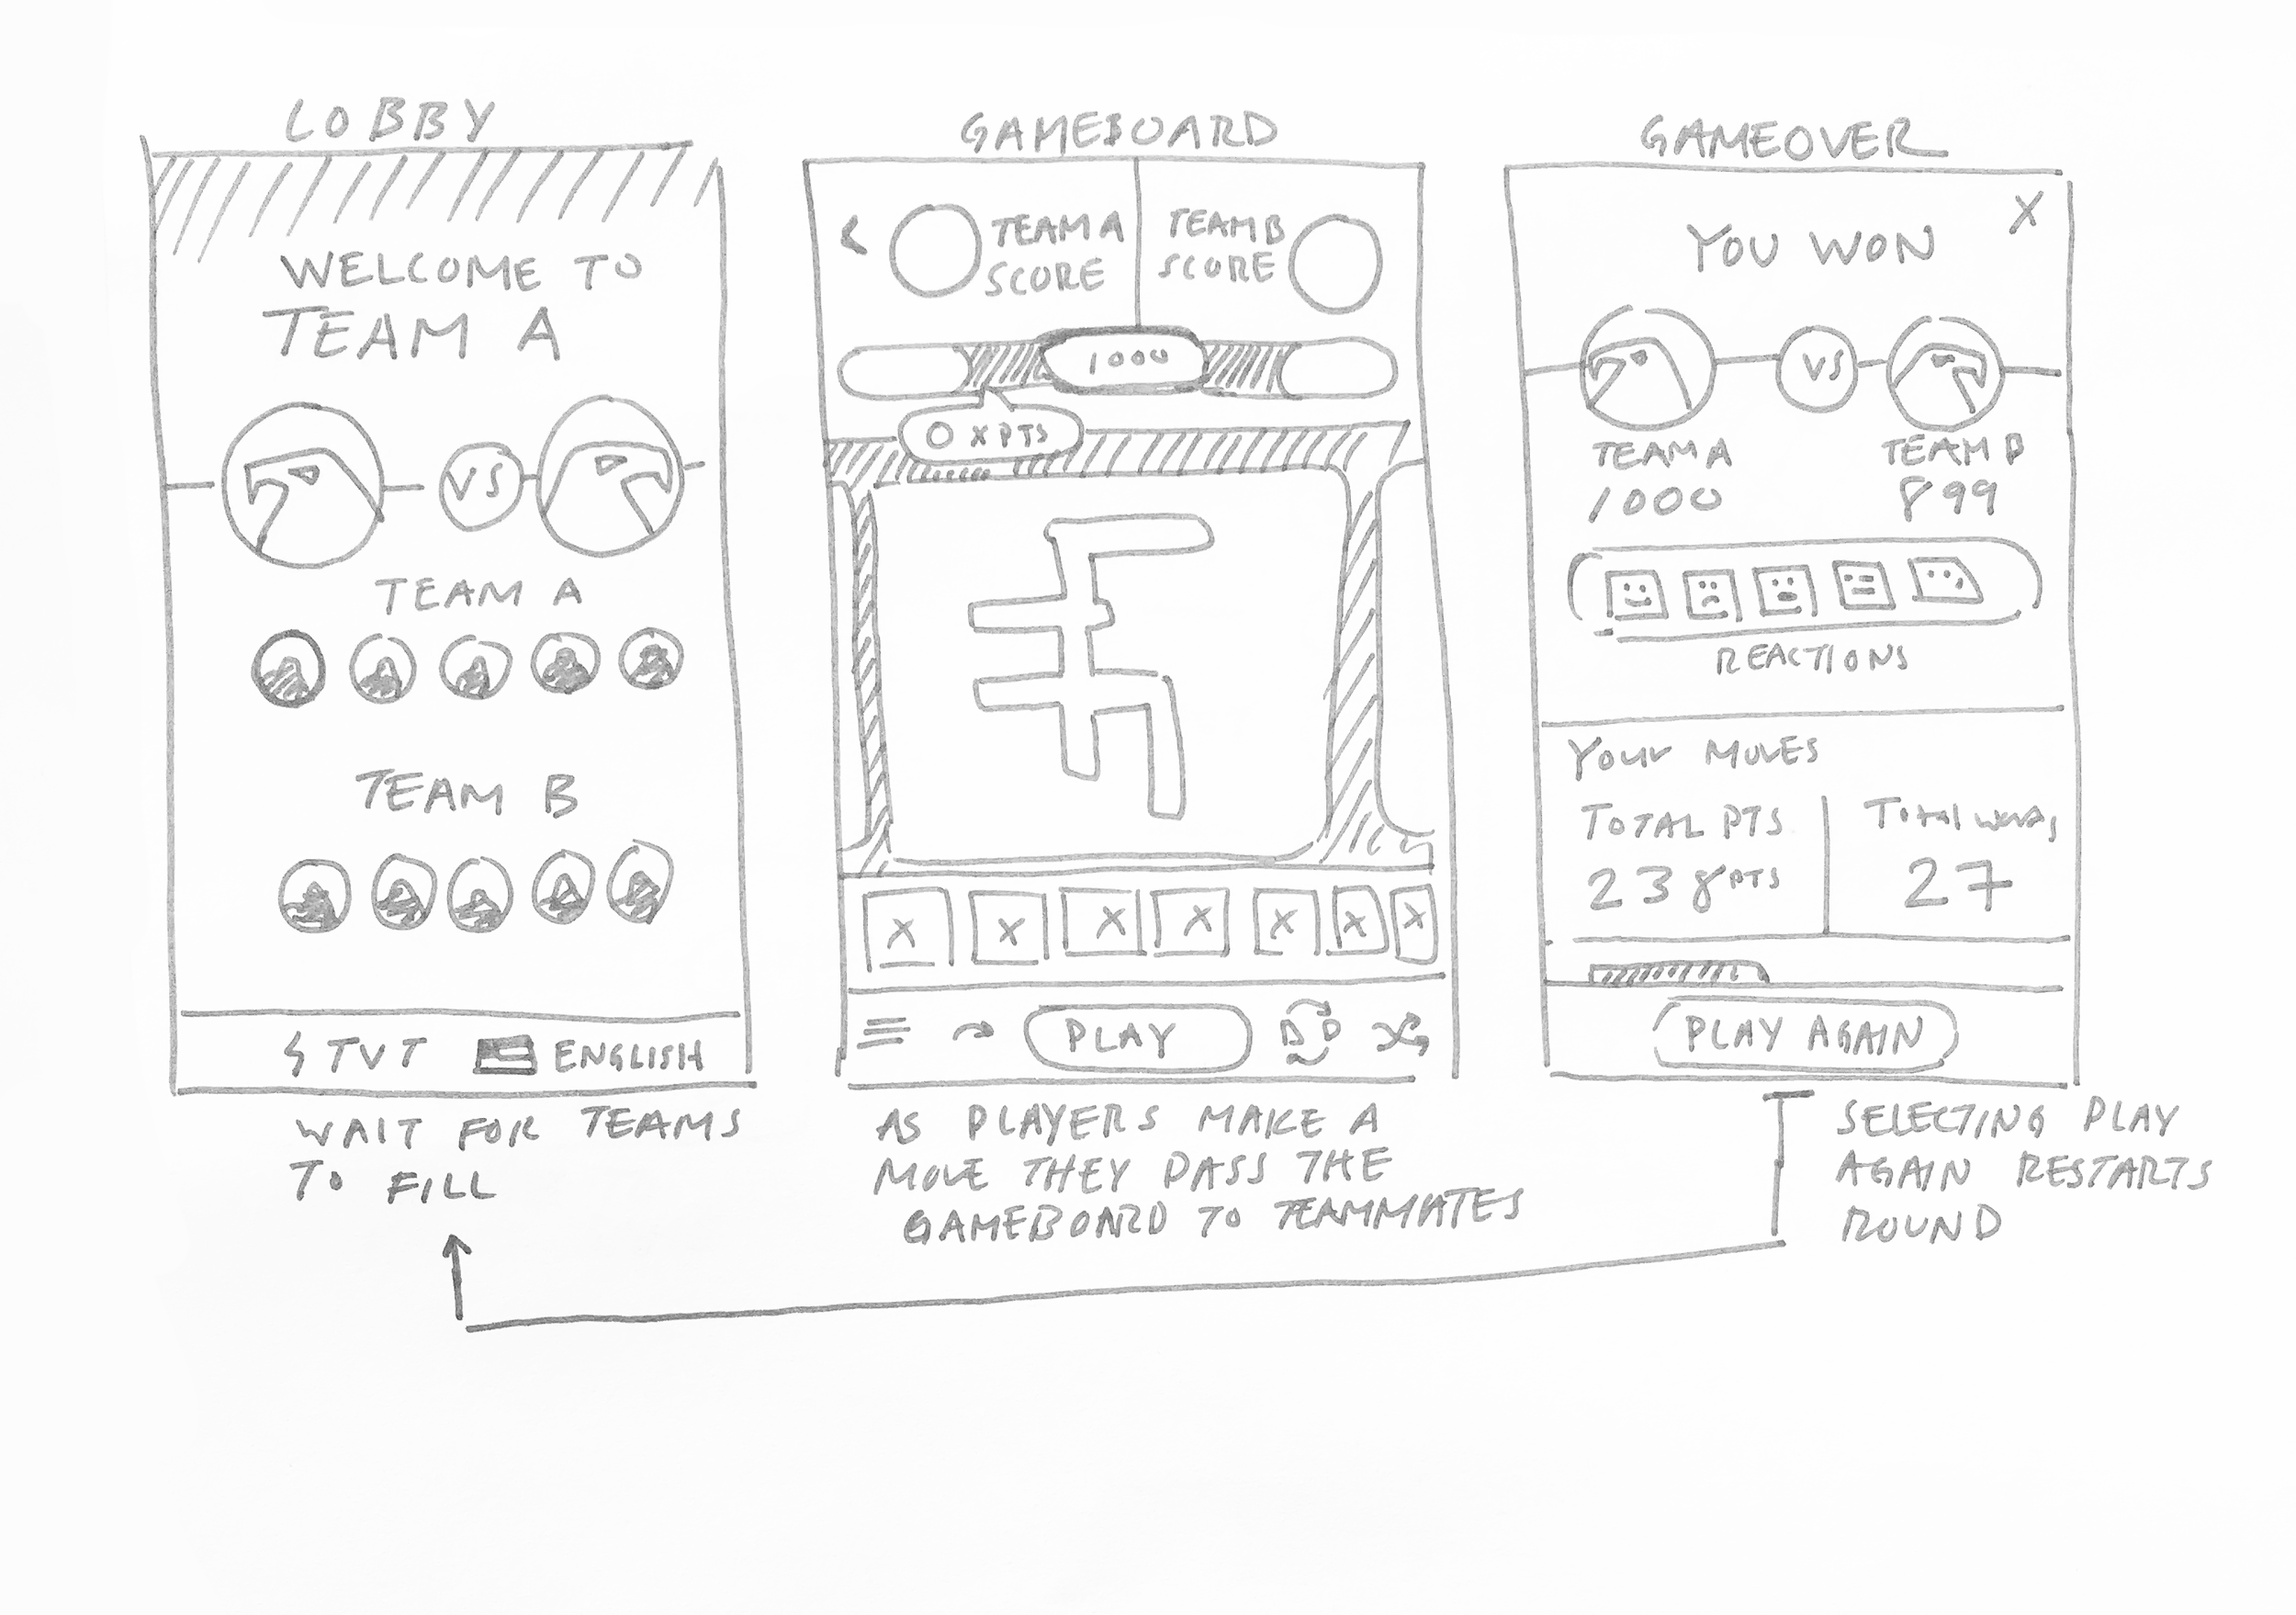 wireframe_02.png